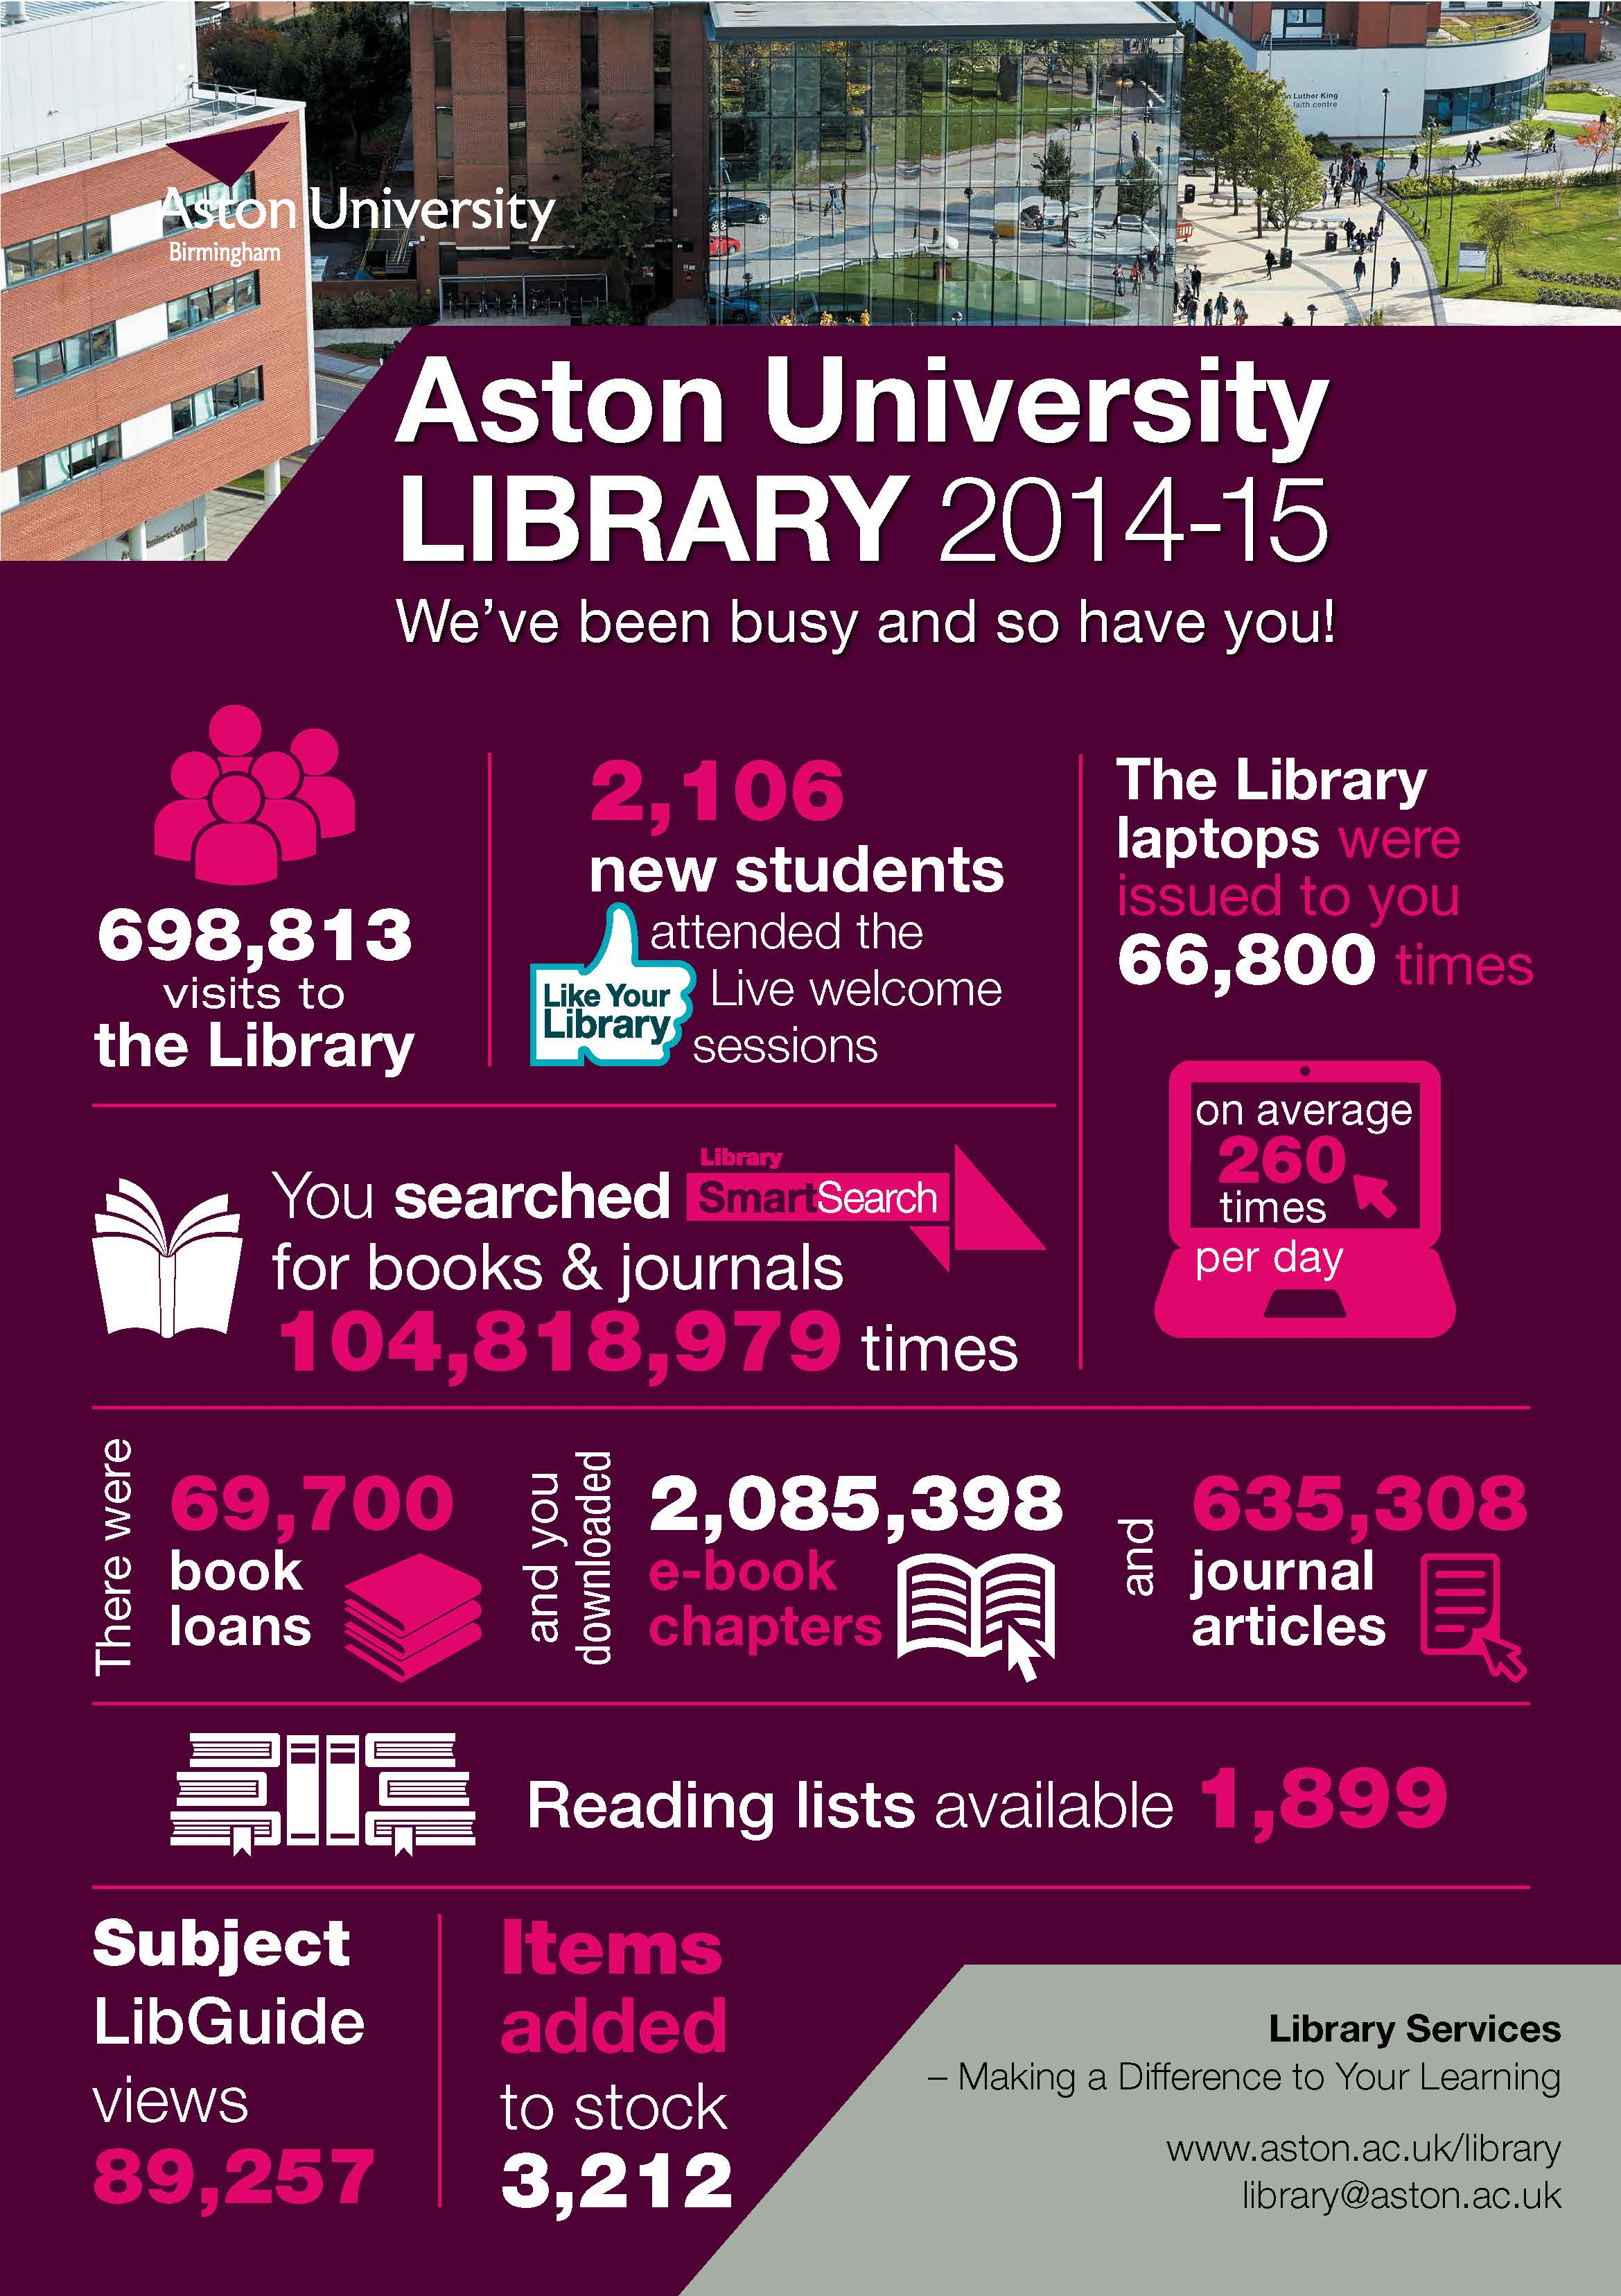 Library Infographic 2014-15